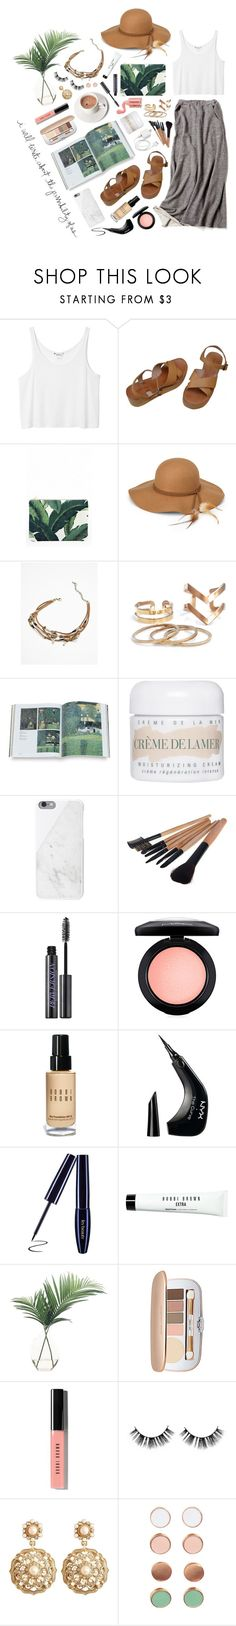 """""""ELLINORE"""" by fevercloud ❤ liked on Polyvore featuring Monki, MELLOW YELLOW, Steve Madden, Free People, La Mer, Native Union, Urban Decay, MAC Cosmetics, Bobbi Brown Cosmetics and NYX"""